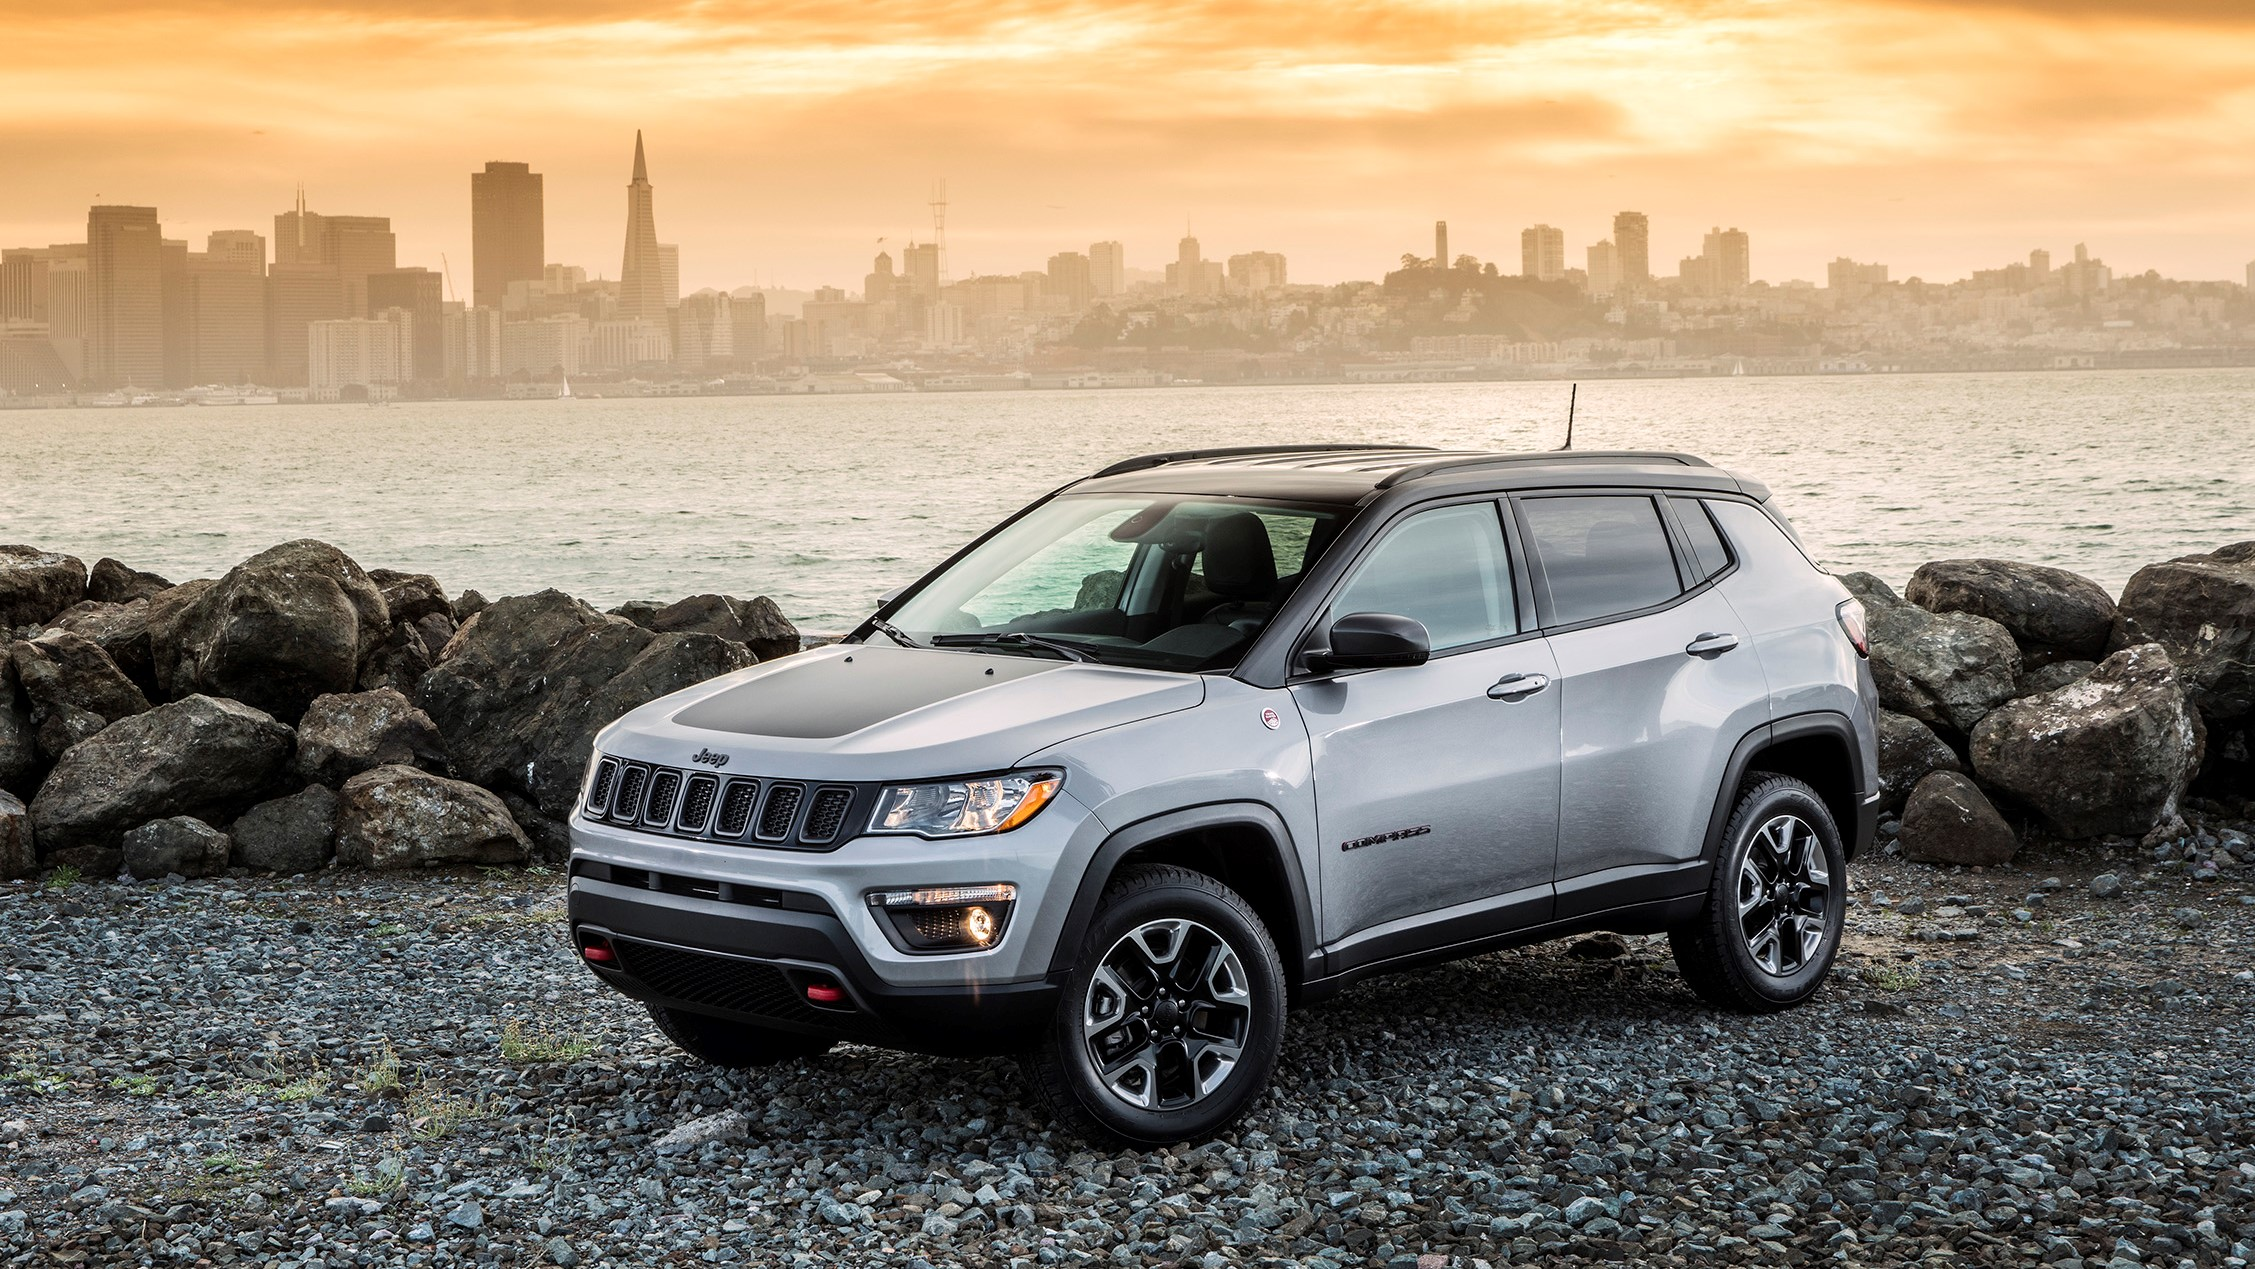 The 2020 Jeep Compass has a 4x4 snow mode that kept me from sliding into a ditch